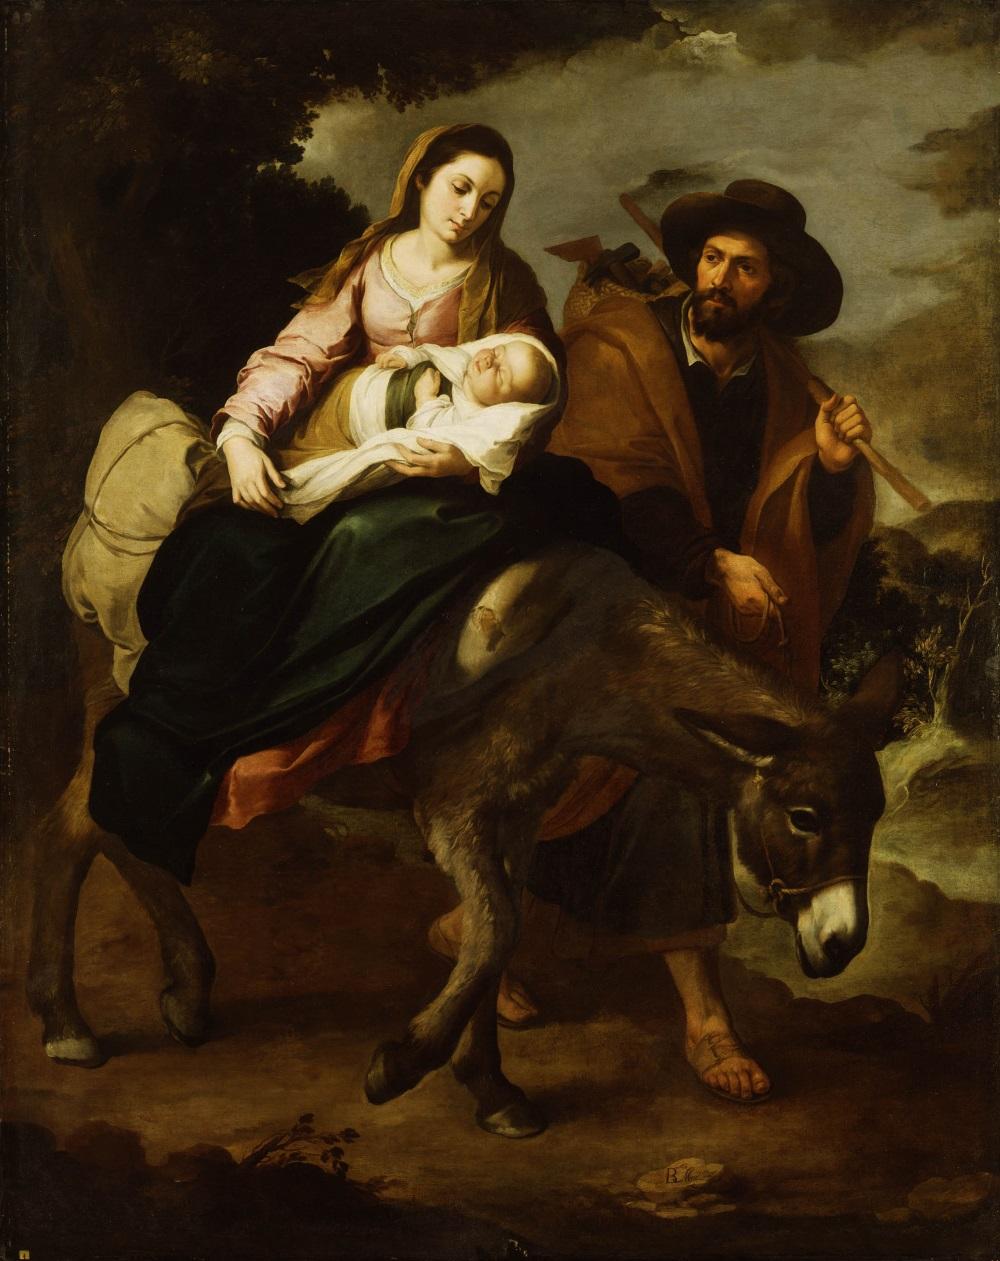 Murillo, The Flight into Egypt, ca. 1647-50. Collection of the Detroit Institute of Arts.